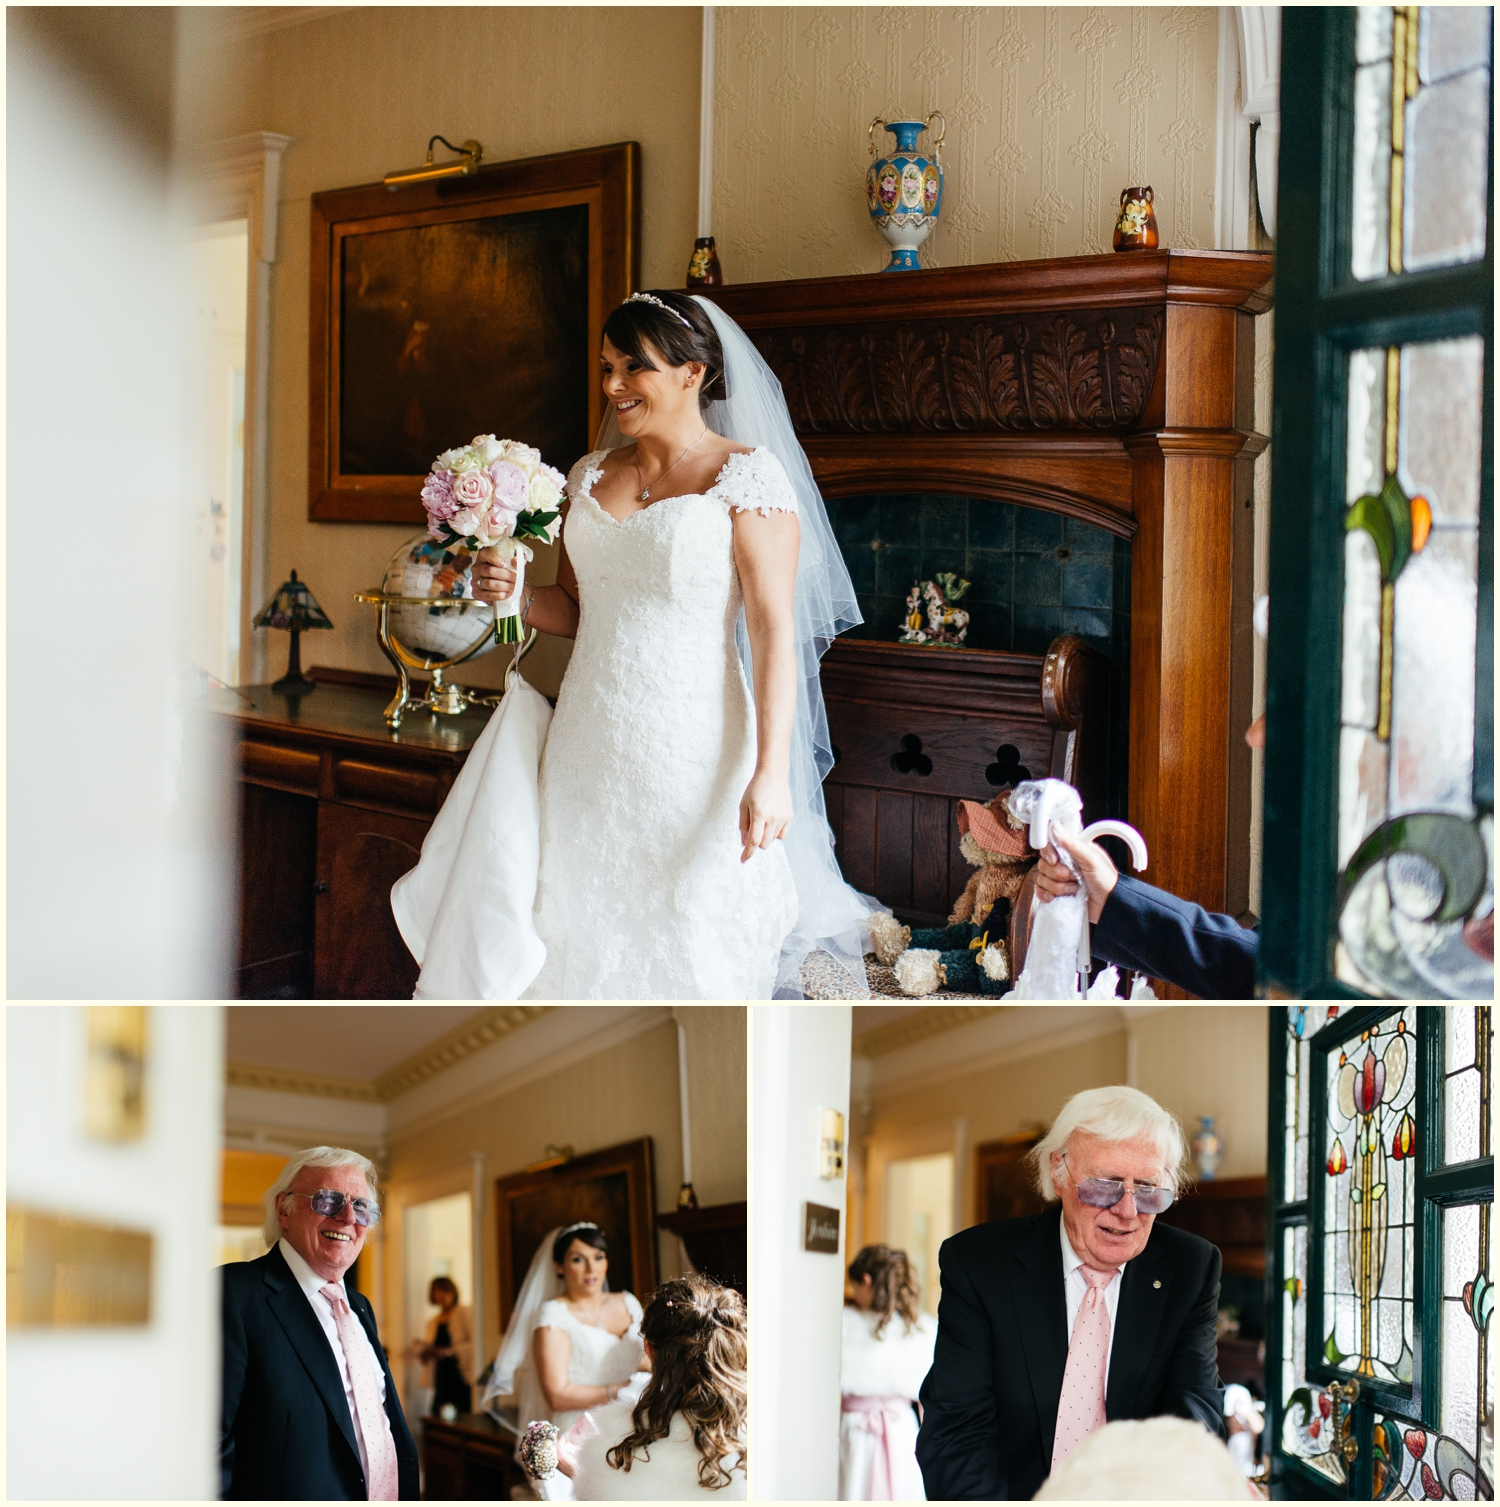 Nikki_Cooper_Photography_Rich&Sarah_Wedding_Photos_Crown_and_Sandys_Ombersley_Worcester_1018.jpg